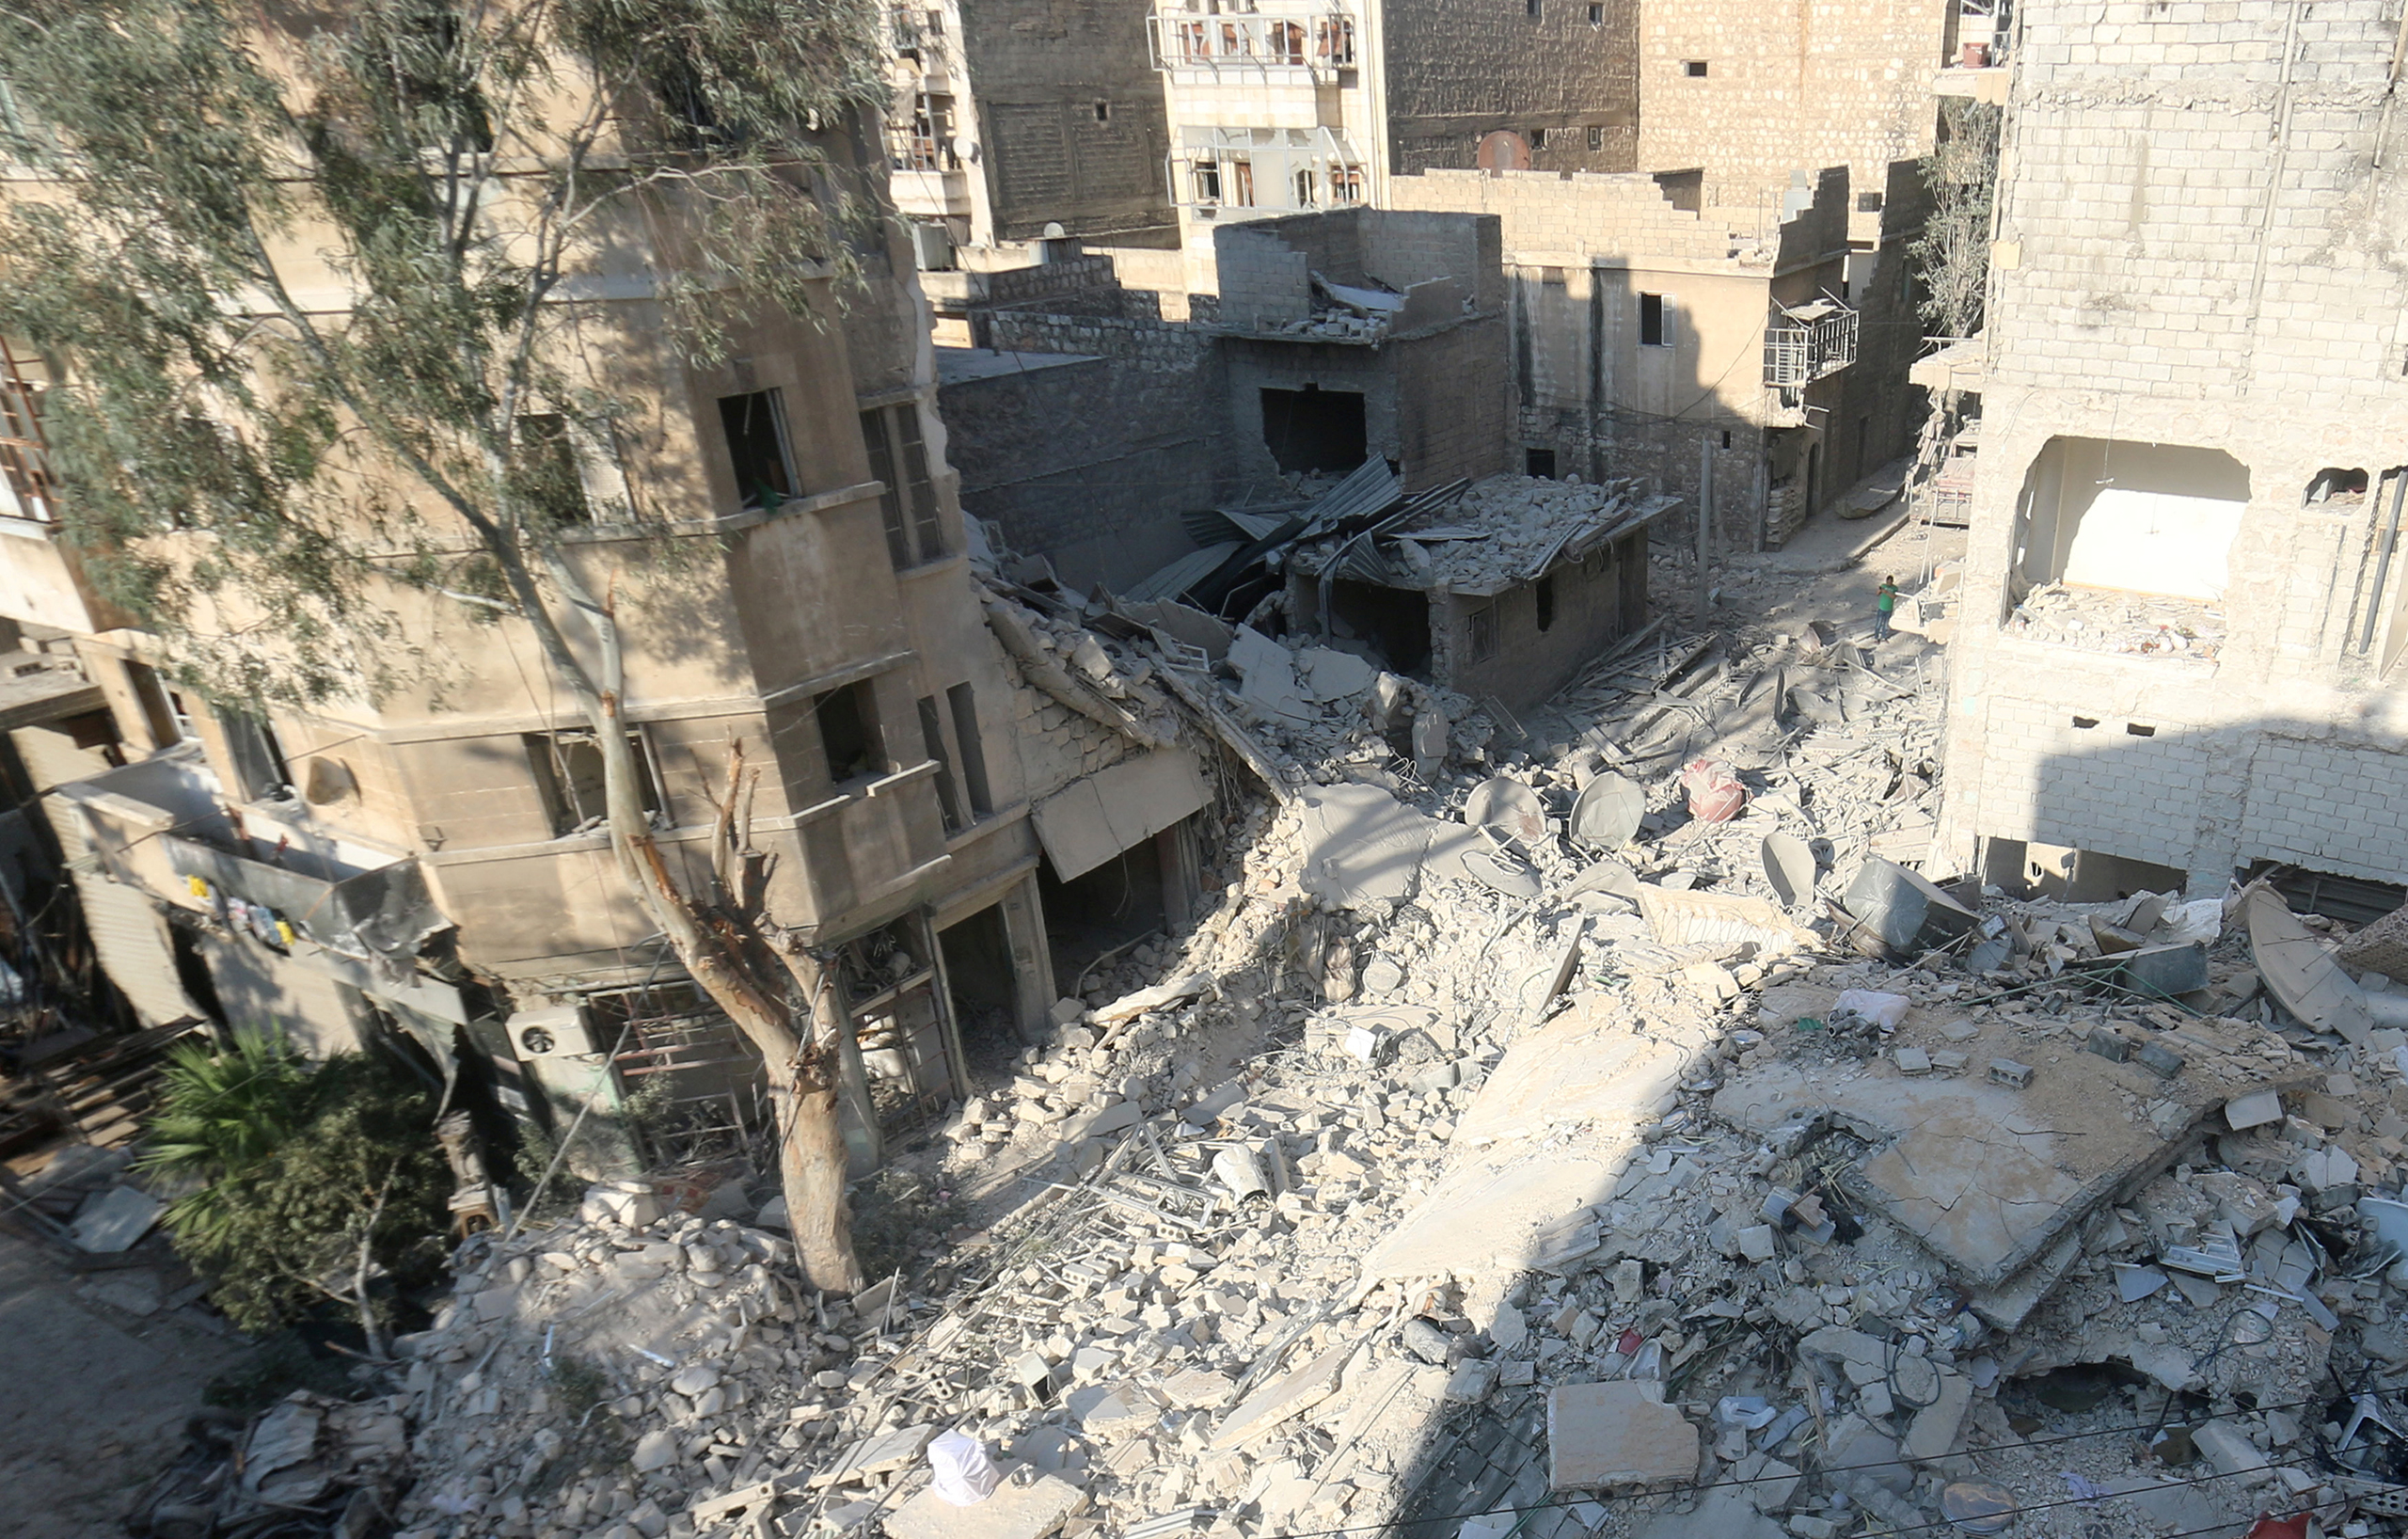 A general view shows the site of the Aug. 17 airstrike where five-year-old Omran Daqneesh and his family were injured in the rebel-held Qaterji neighborhood of Aleppo, Syria, on Aug. 18, 2016. The Daqneesh family lived in the building on the left.